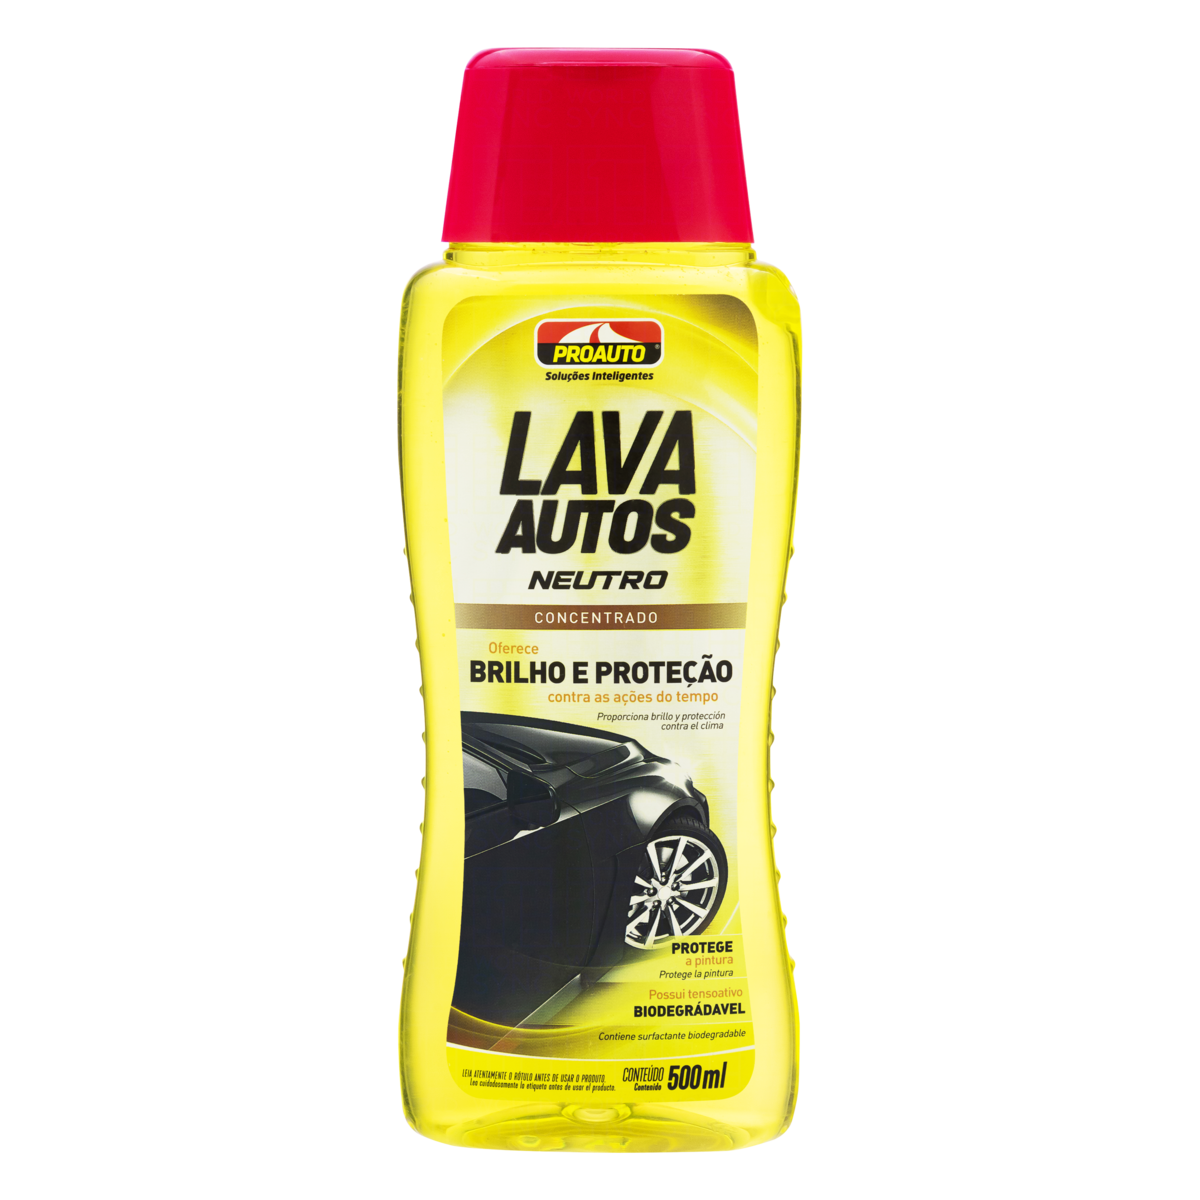 7897520100135 - LAVA AUTOS CONCENTRADO NEUTRO PROAUTO CLASSIC FRASCO 500ML